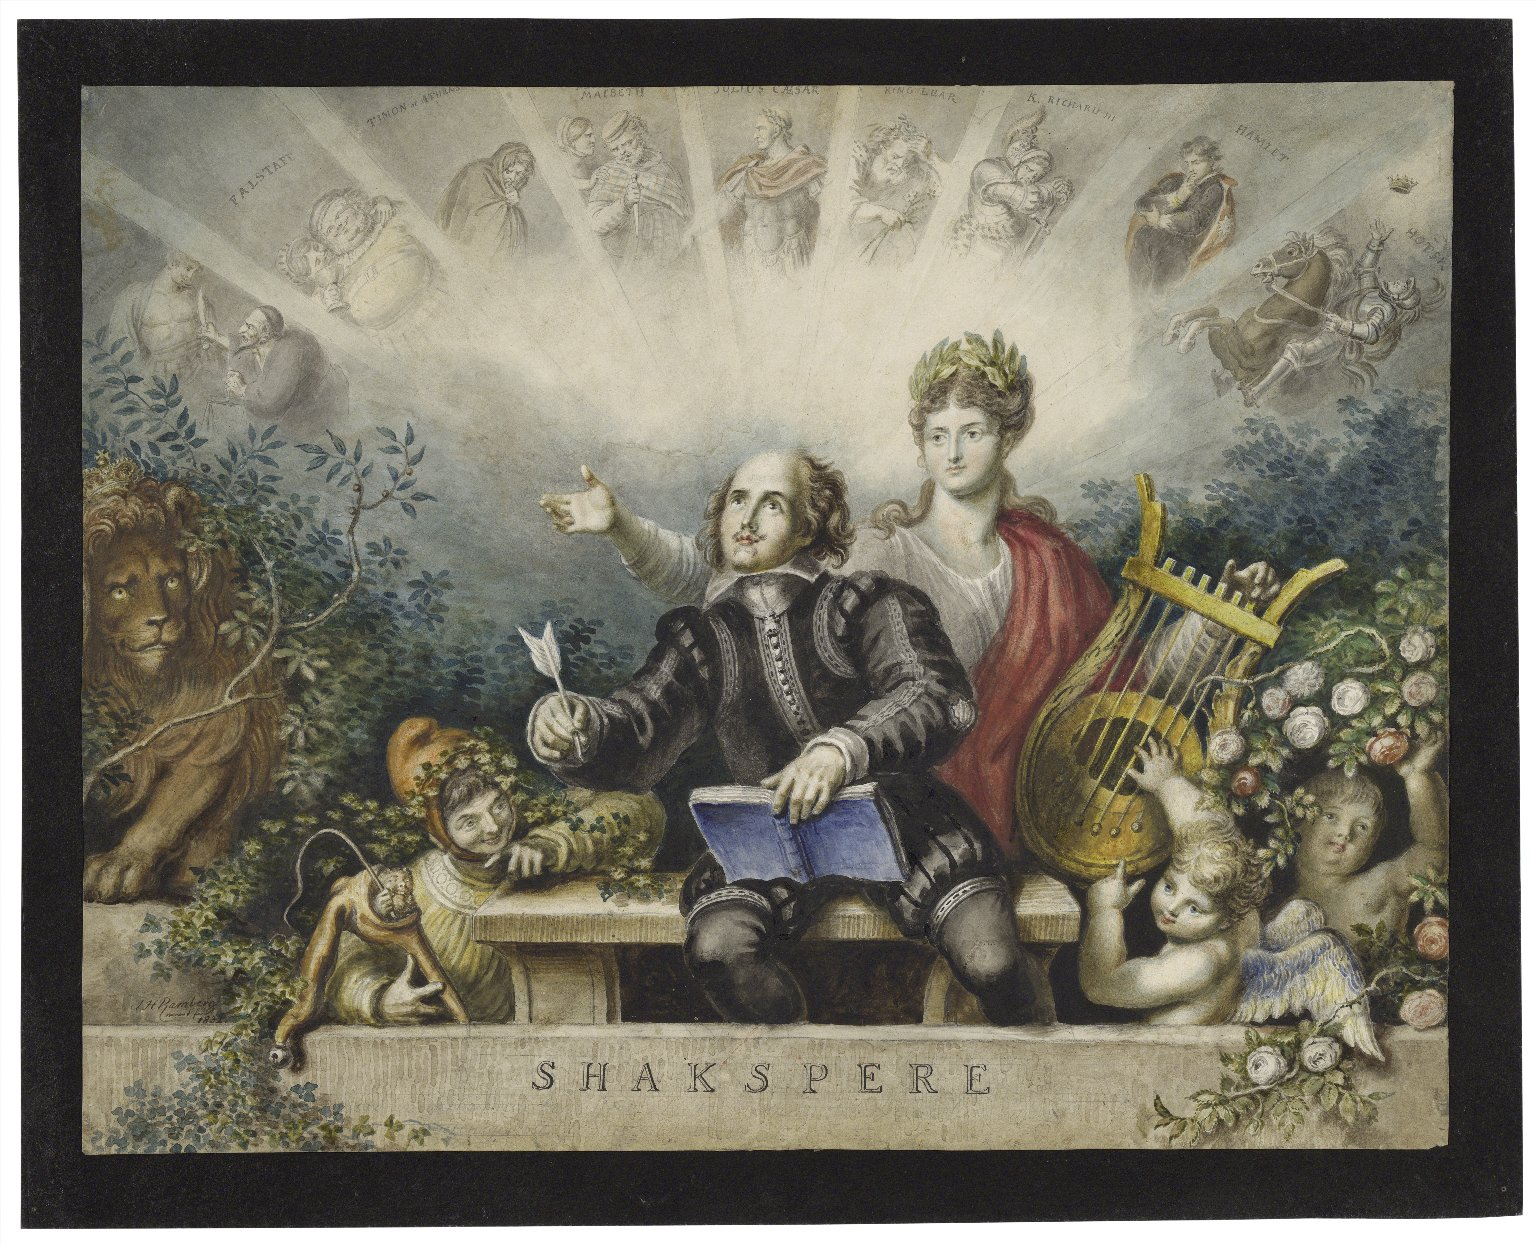 Shakspere [portrait surrounded by a muse, clown, lion, cupids, and various characters from his plays] [graphic] / [Johann Heinrich Ramberg].